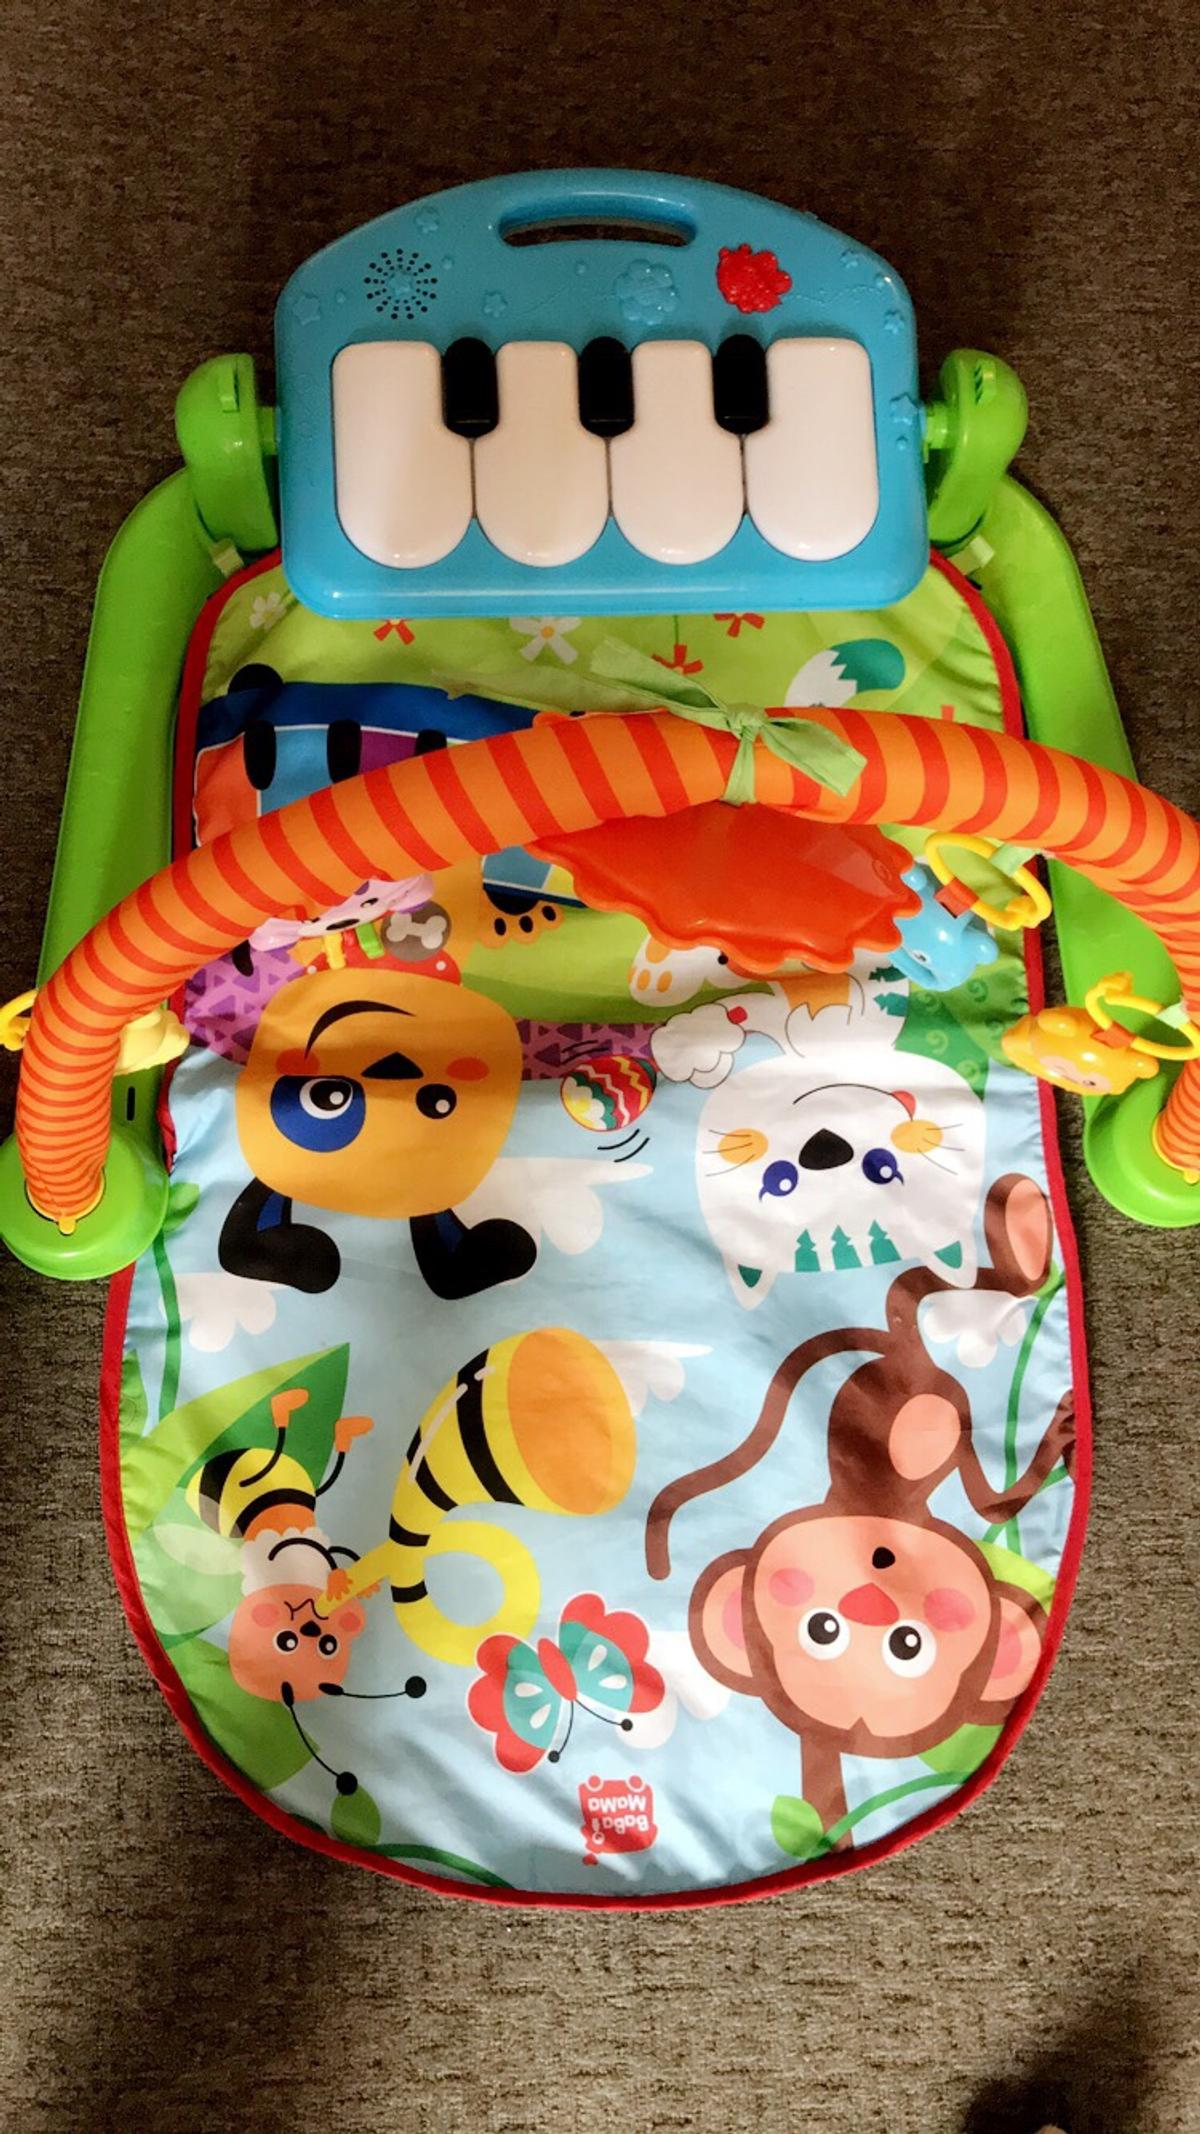 How To Play Newborn On Piano Newborn Toddler Piano Music Play Mat In B15 Birmingham For